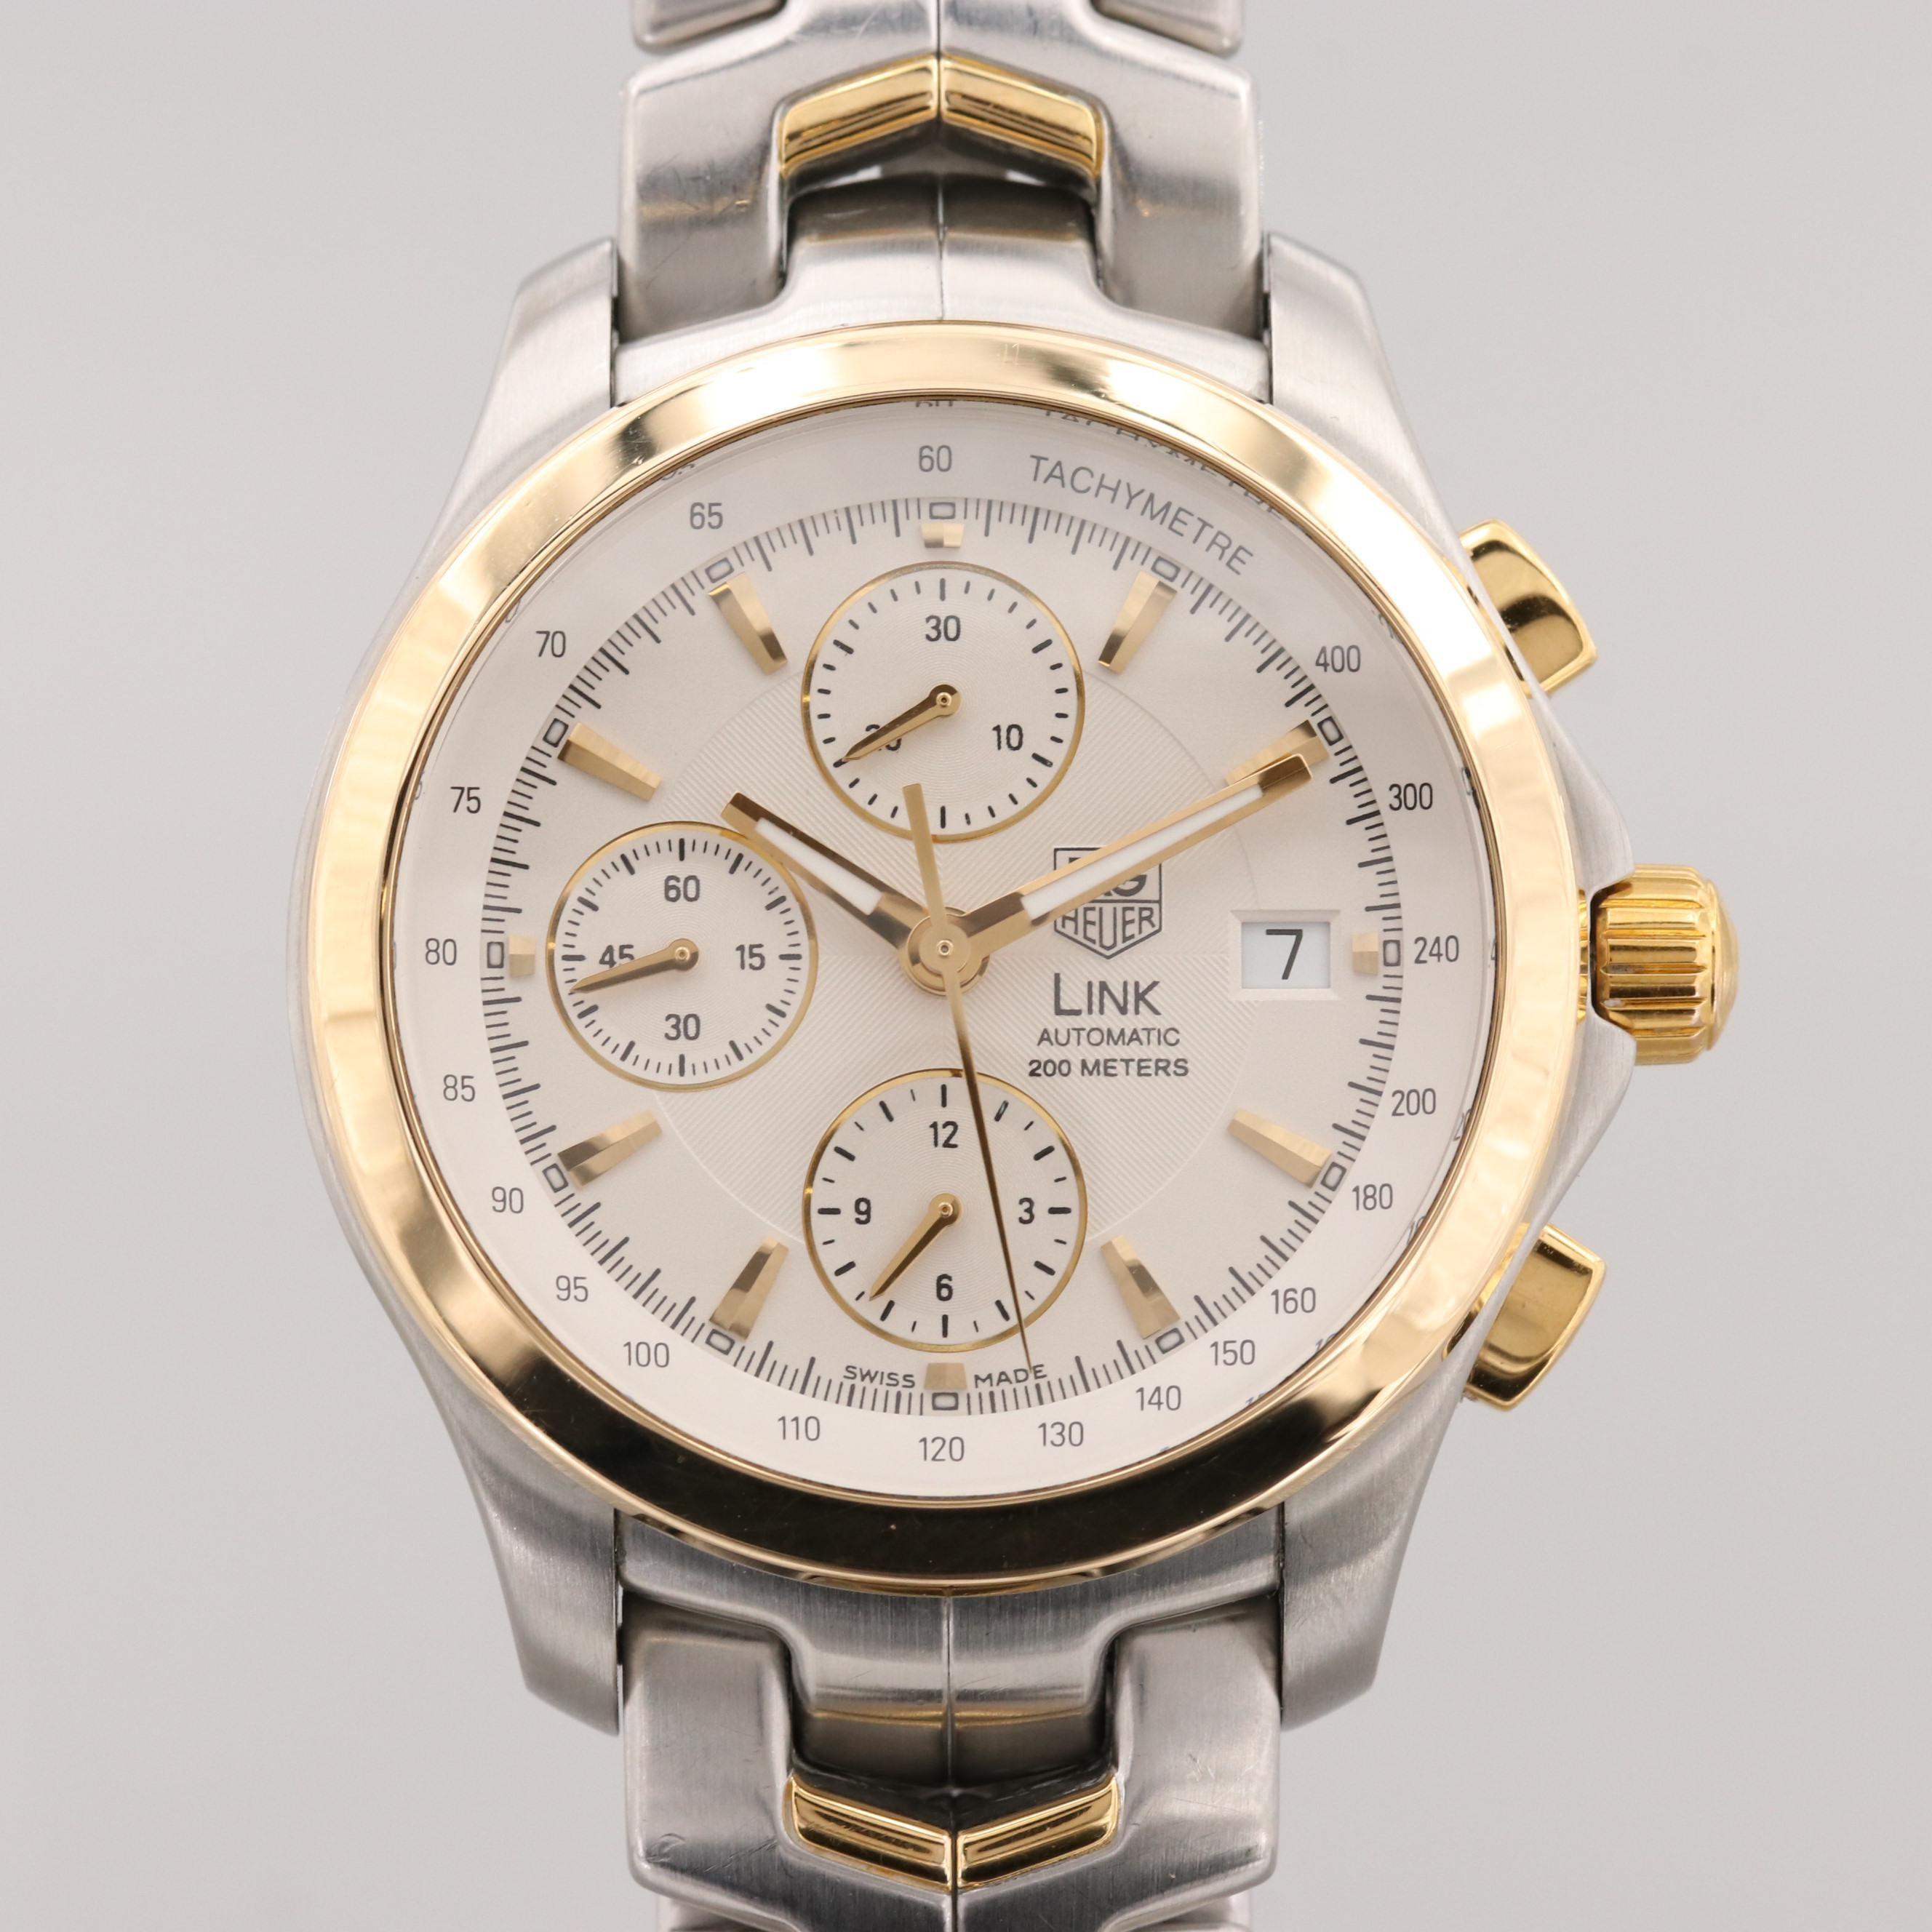 TAG Heuer Link Stainless Steel, 18K Yellow Gold Automatic Chronograph Wristwatch